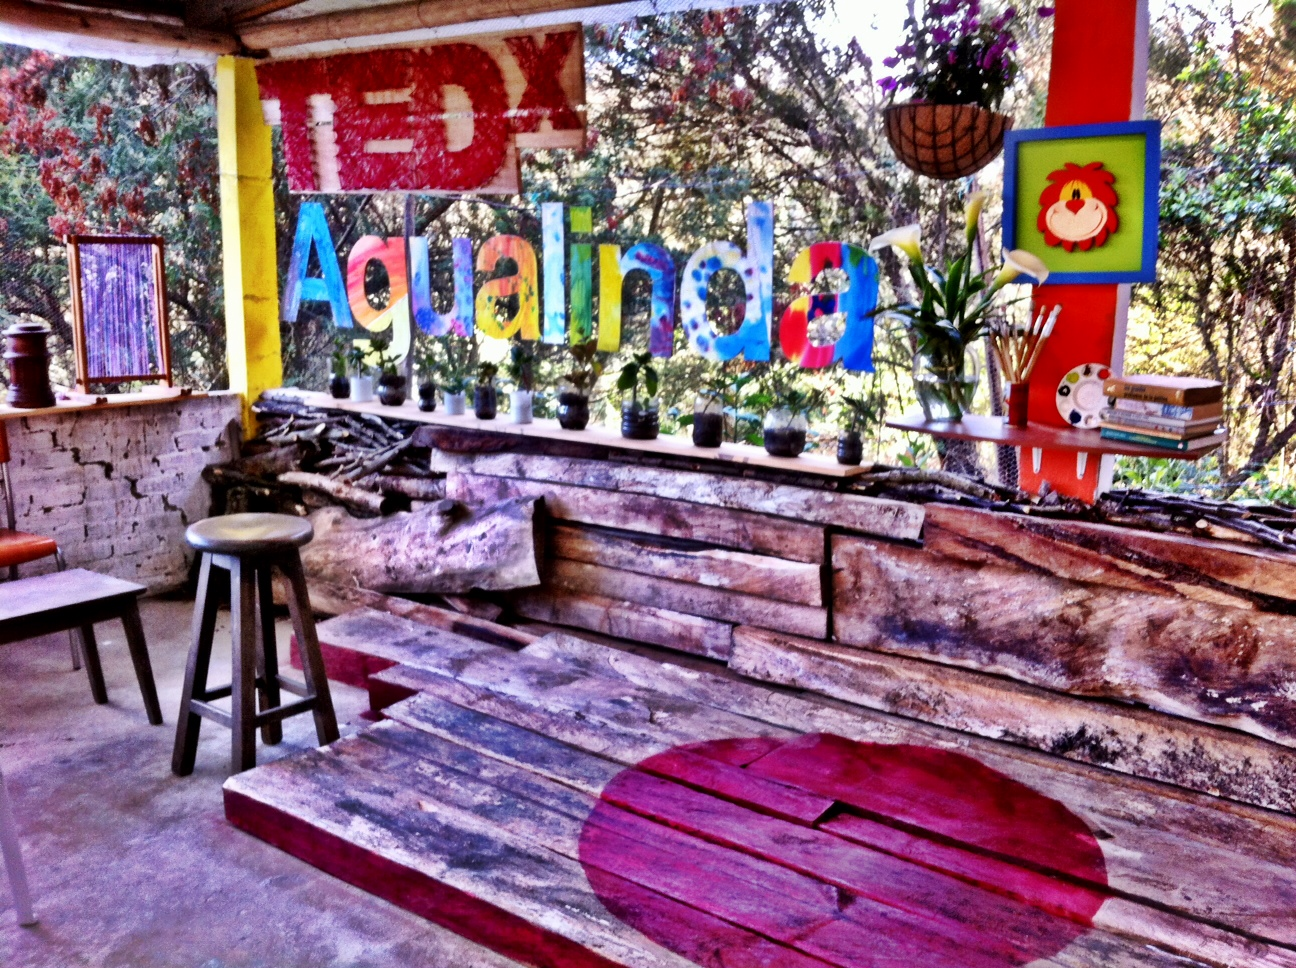 The very colorful stage of TEDxAguaLinda, one of the 10 events that Philipe Spath has helped organize in Colombia. Photo: Courtesy of Philipe Spath